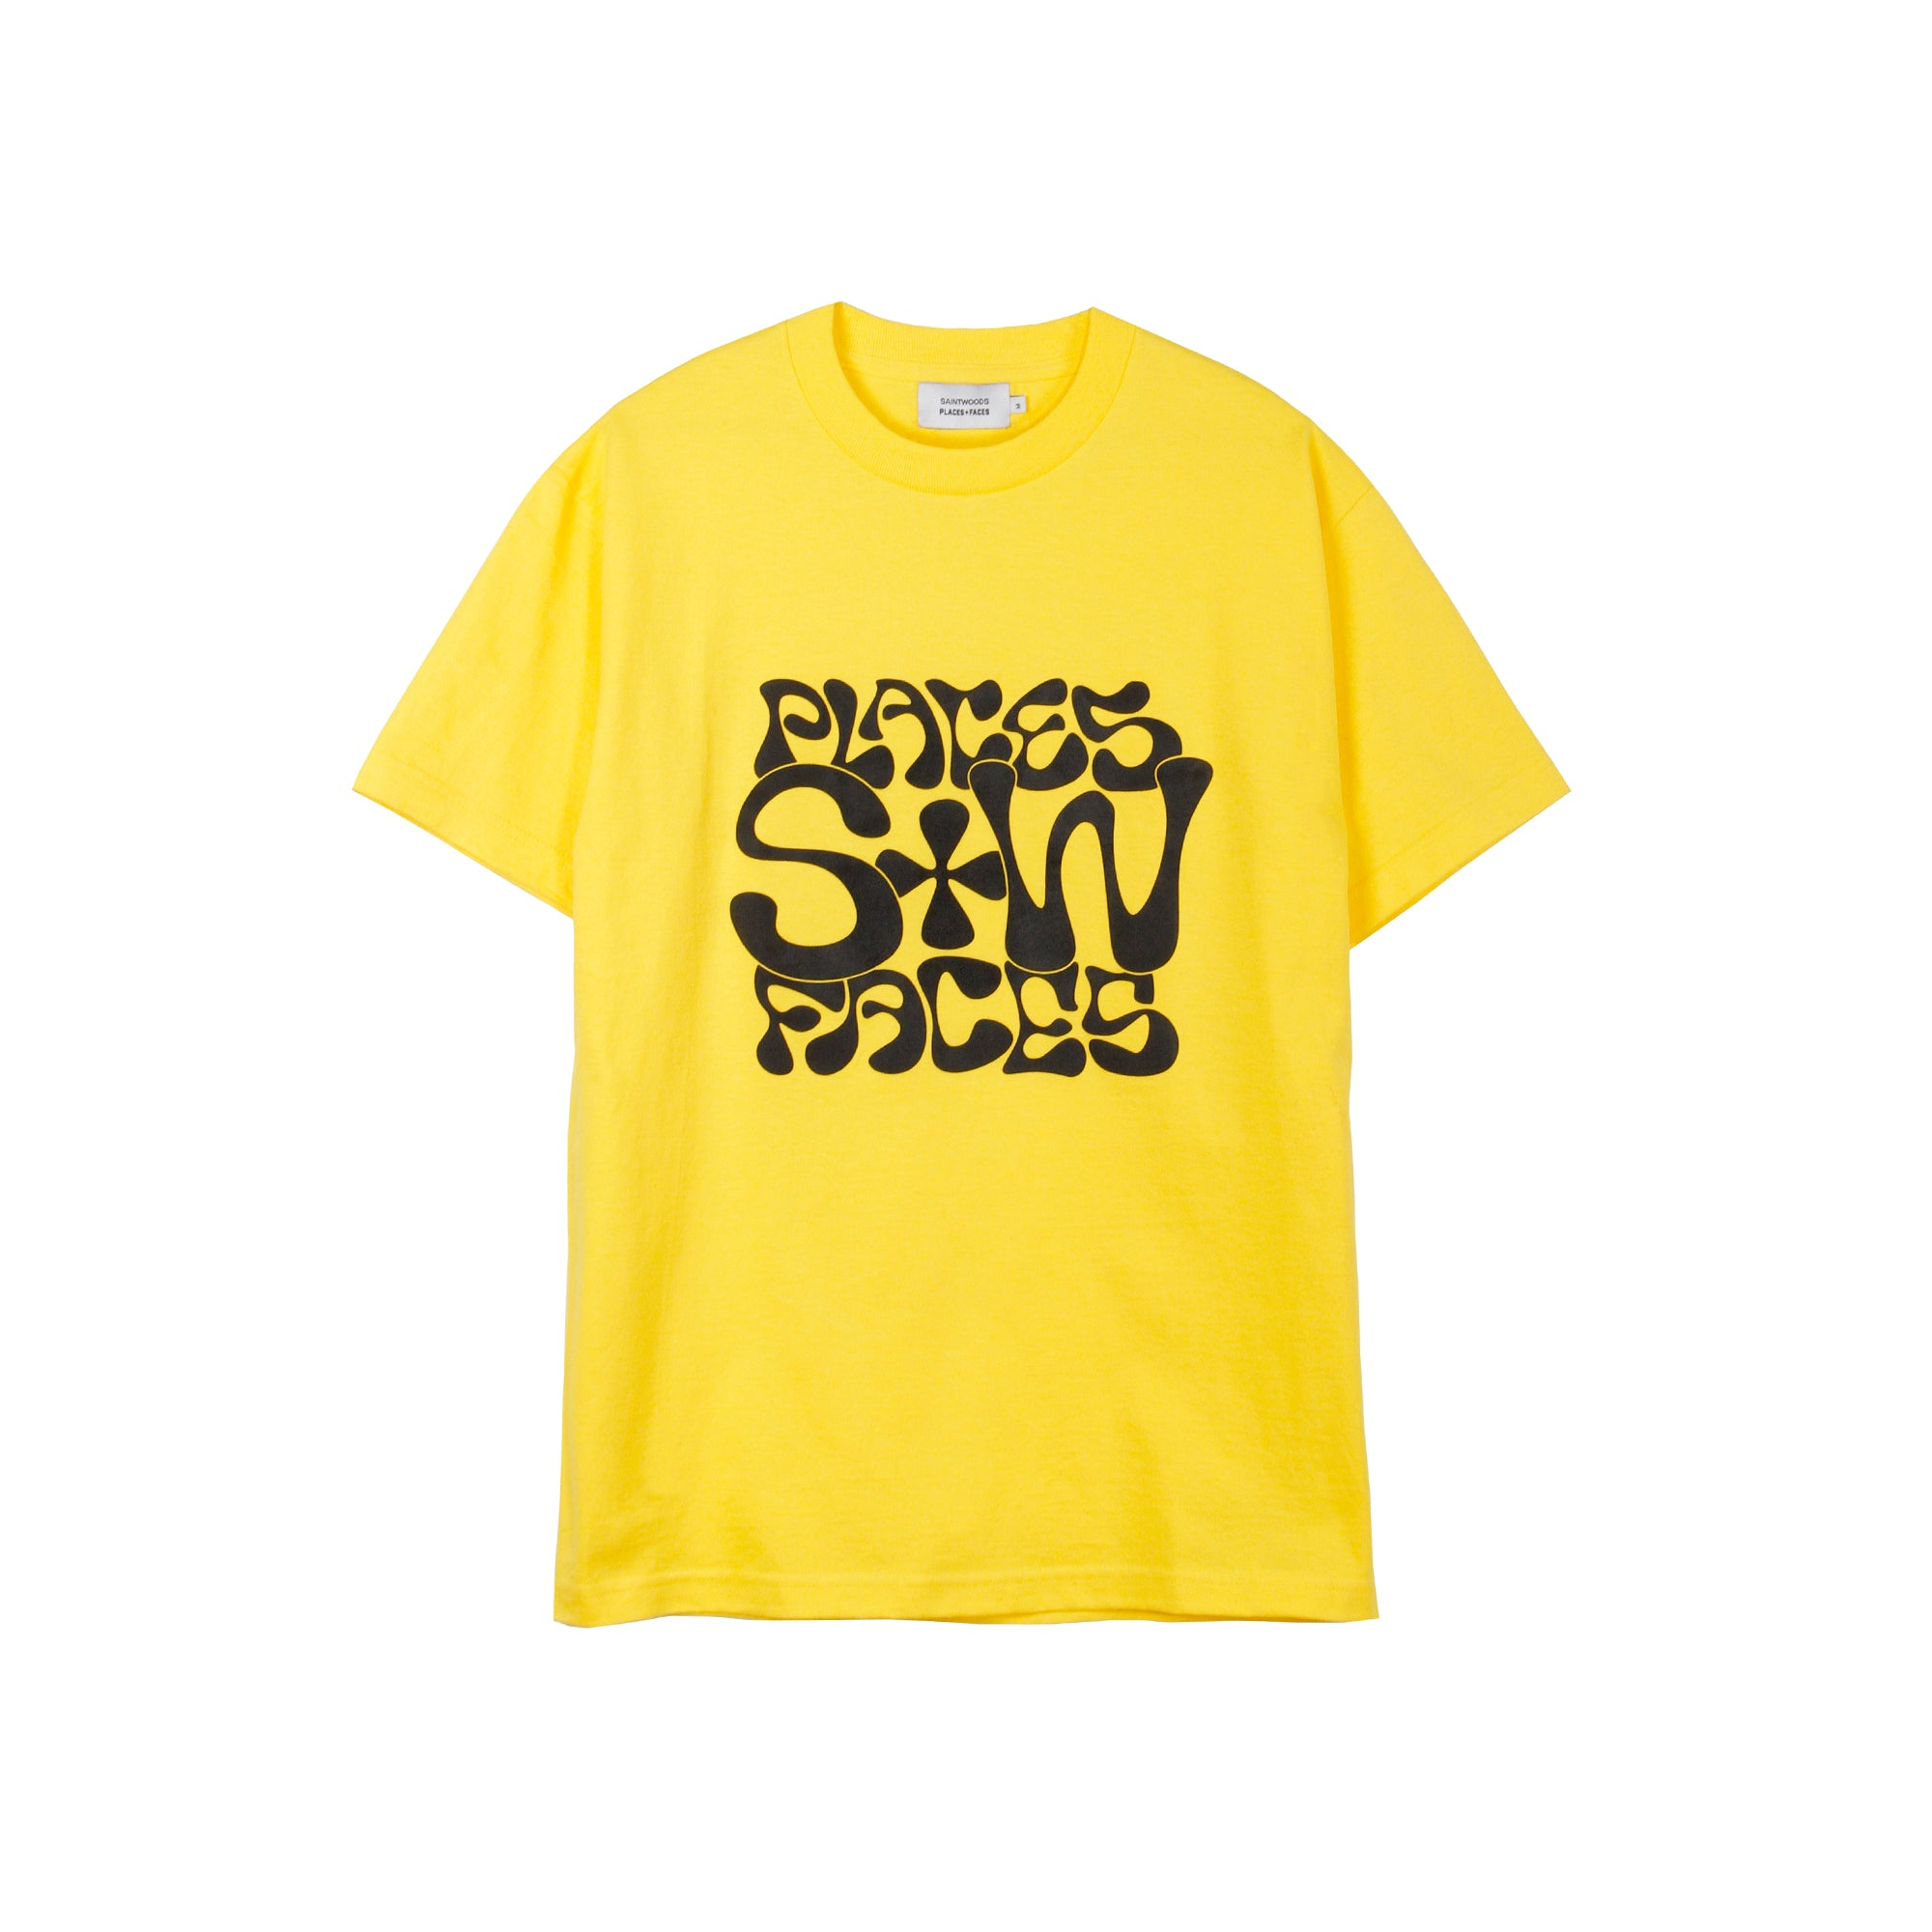 P+F / SW Tee - T-Shirts - Saintwoods